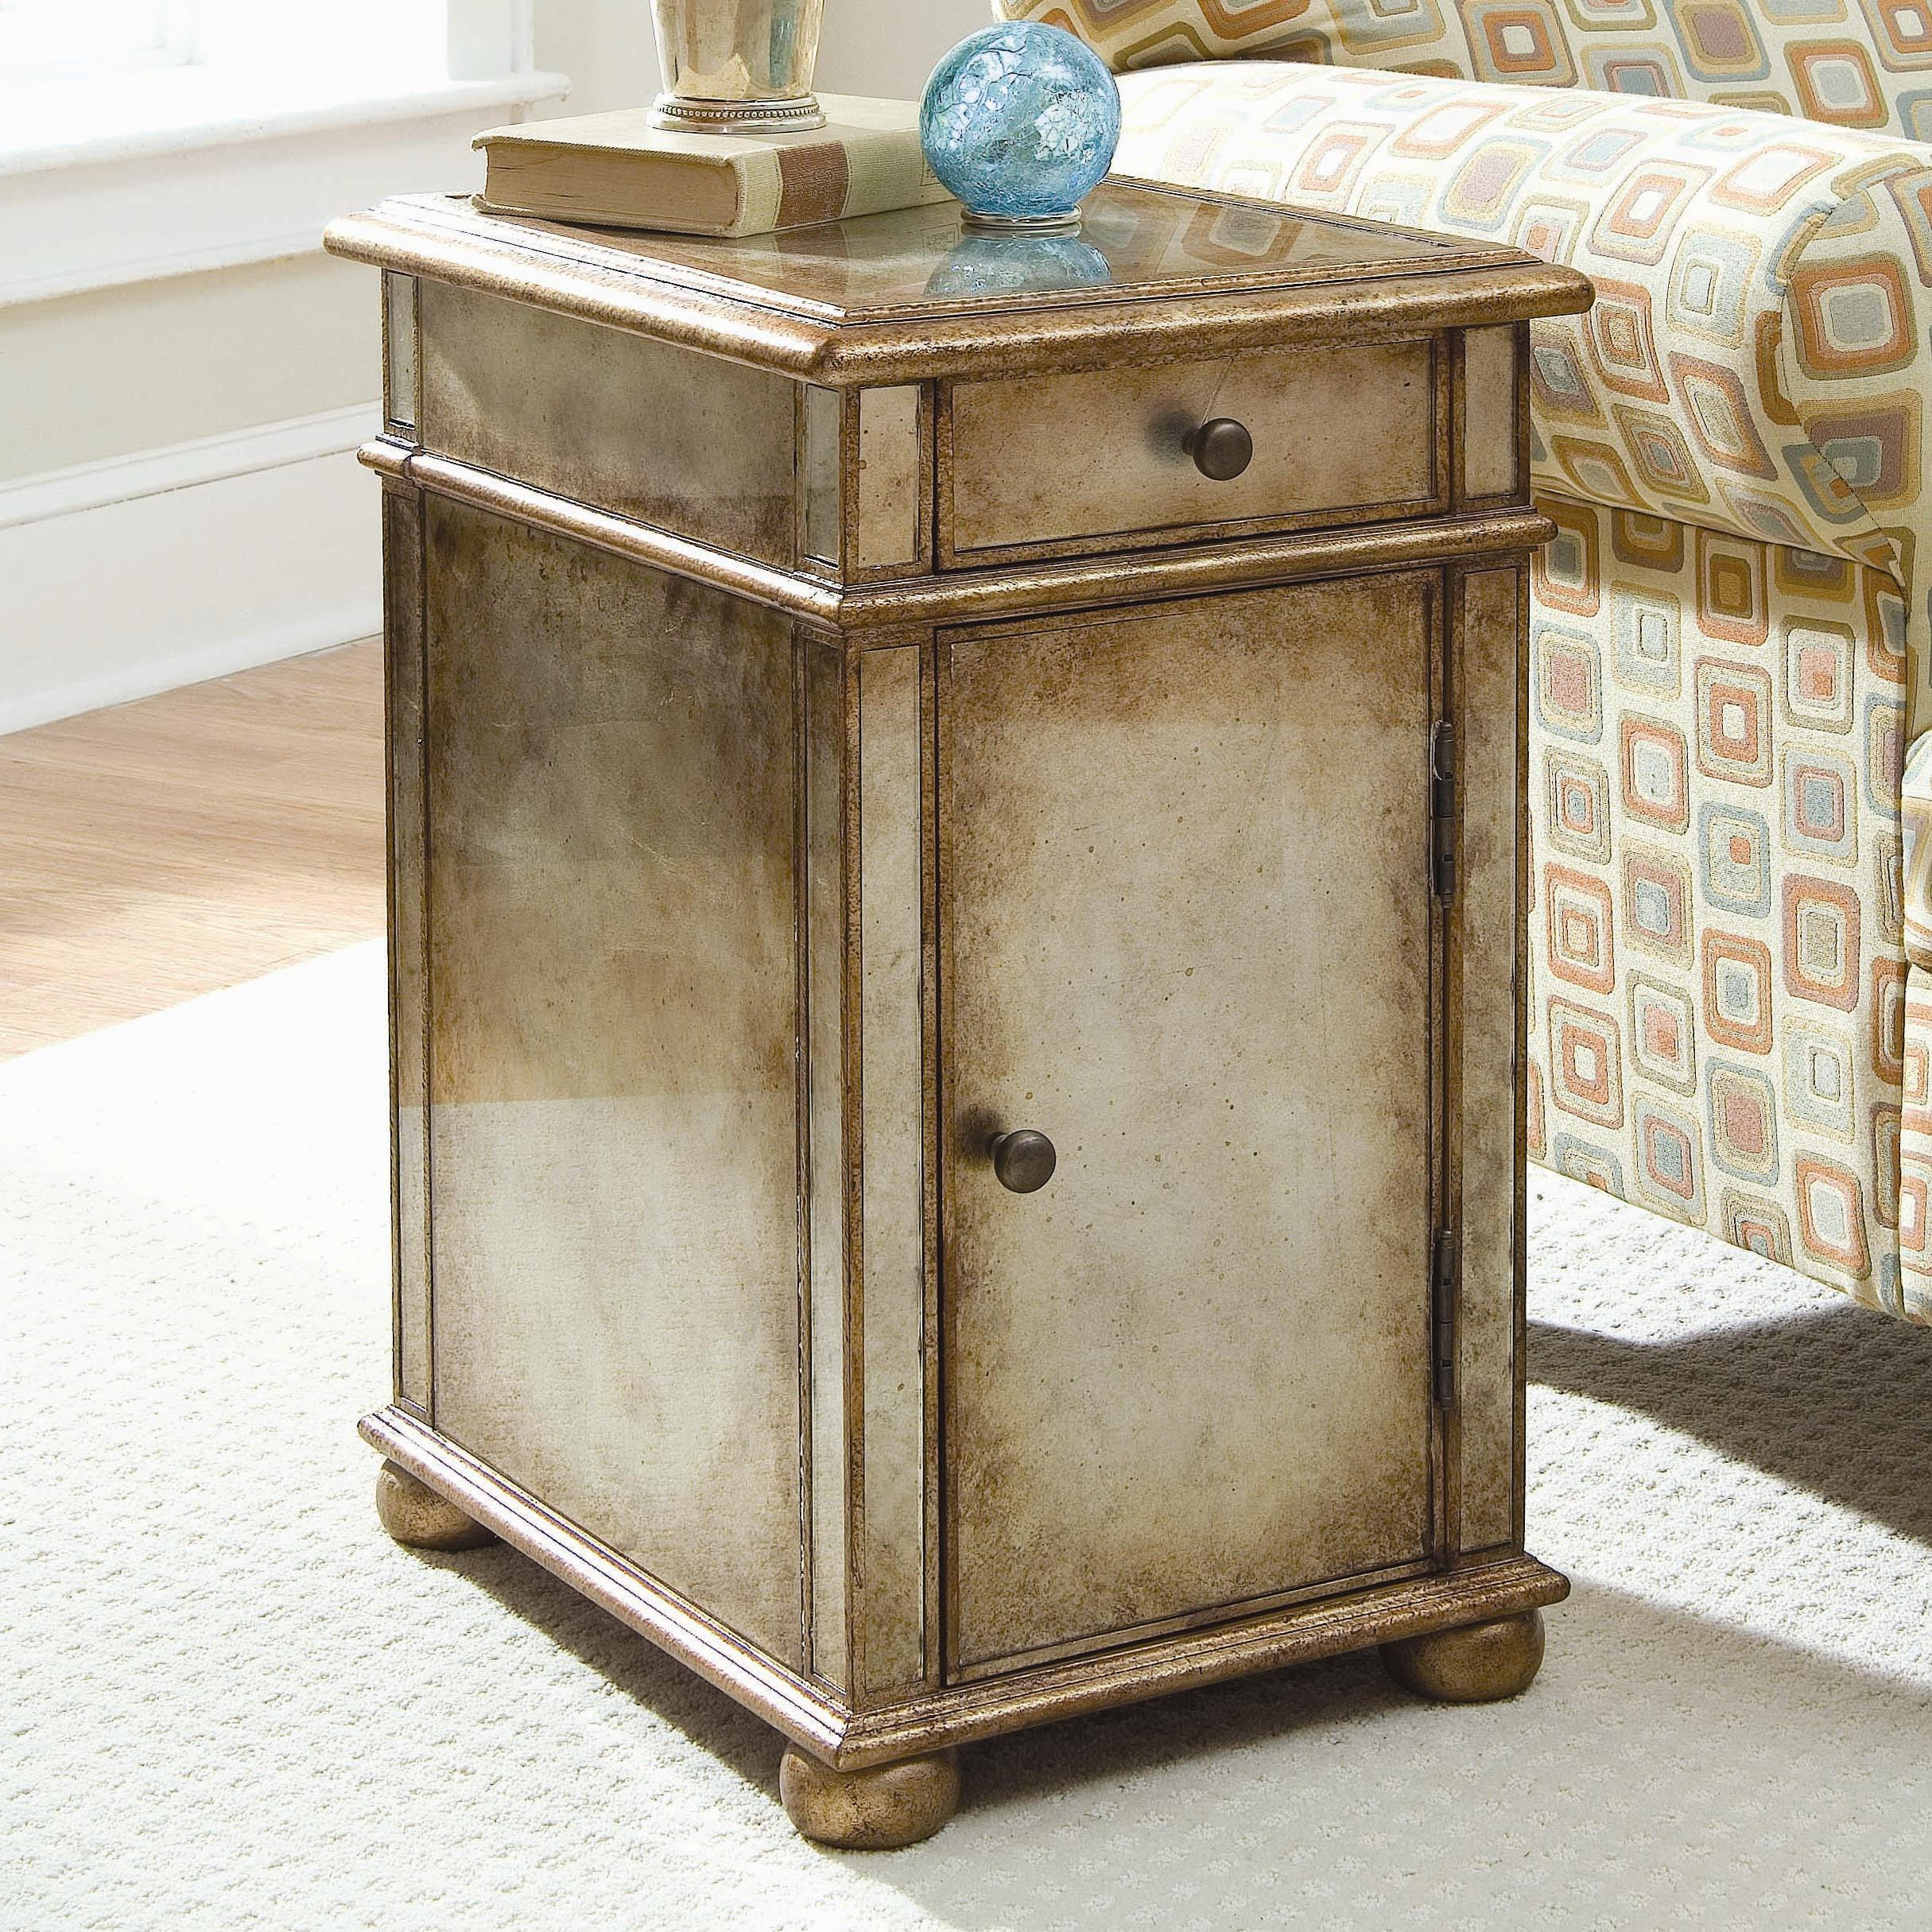 Hamilton Home Seven Seas One-Door One-Drawer Antique Mirror Chest - Item Number: 500-50-700